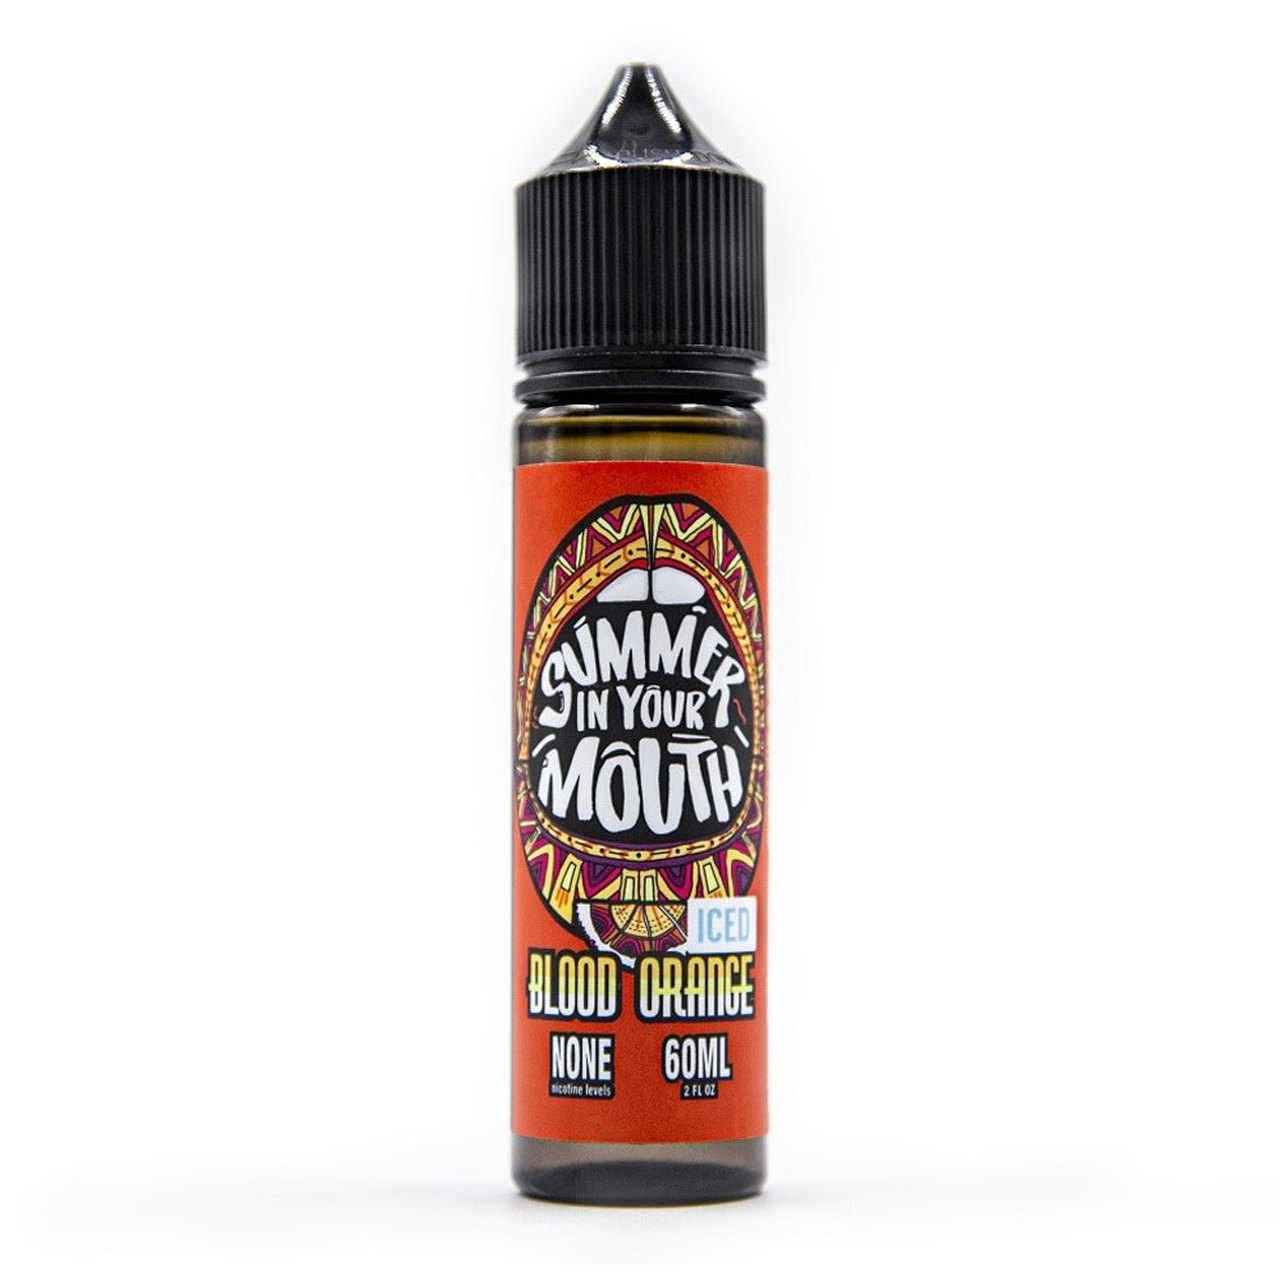 SUMMER IN YOUR MOUTH ICED BLOOD ORANGE 60ML